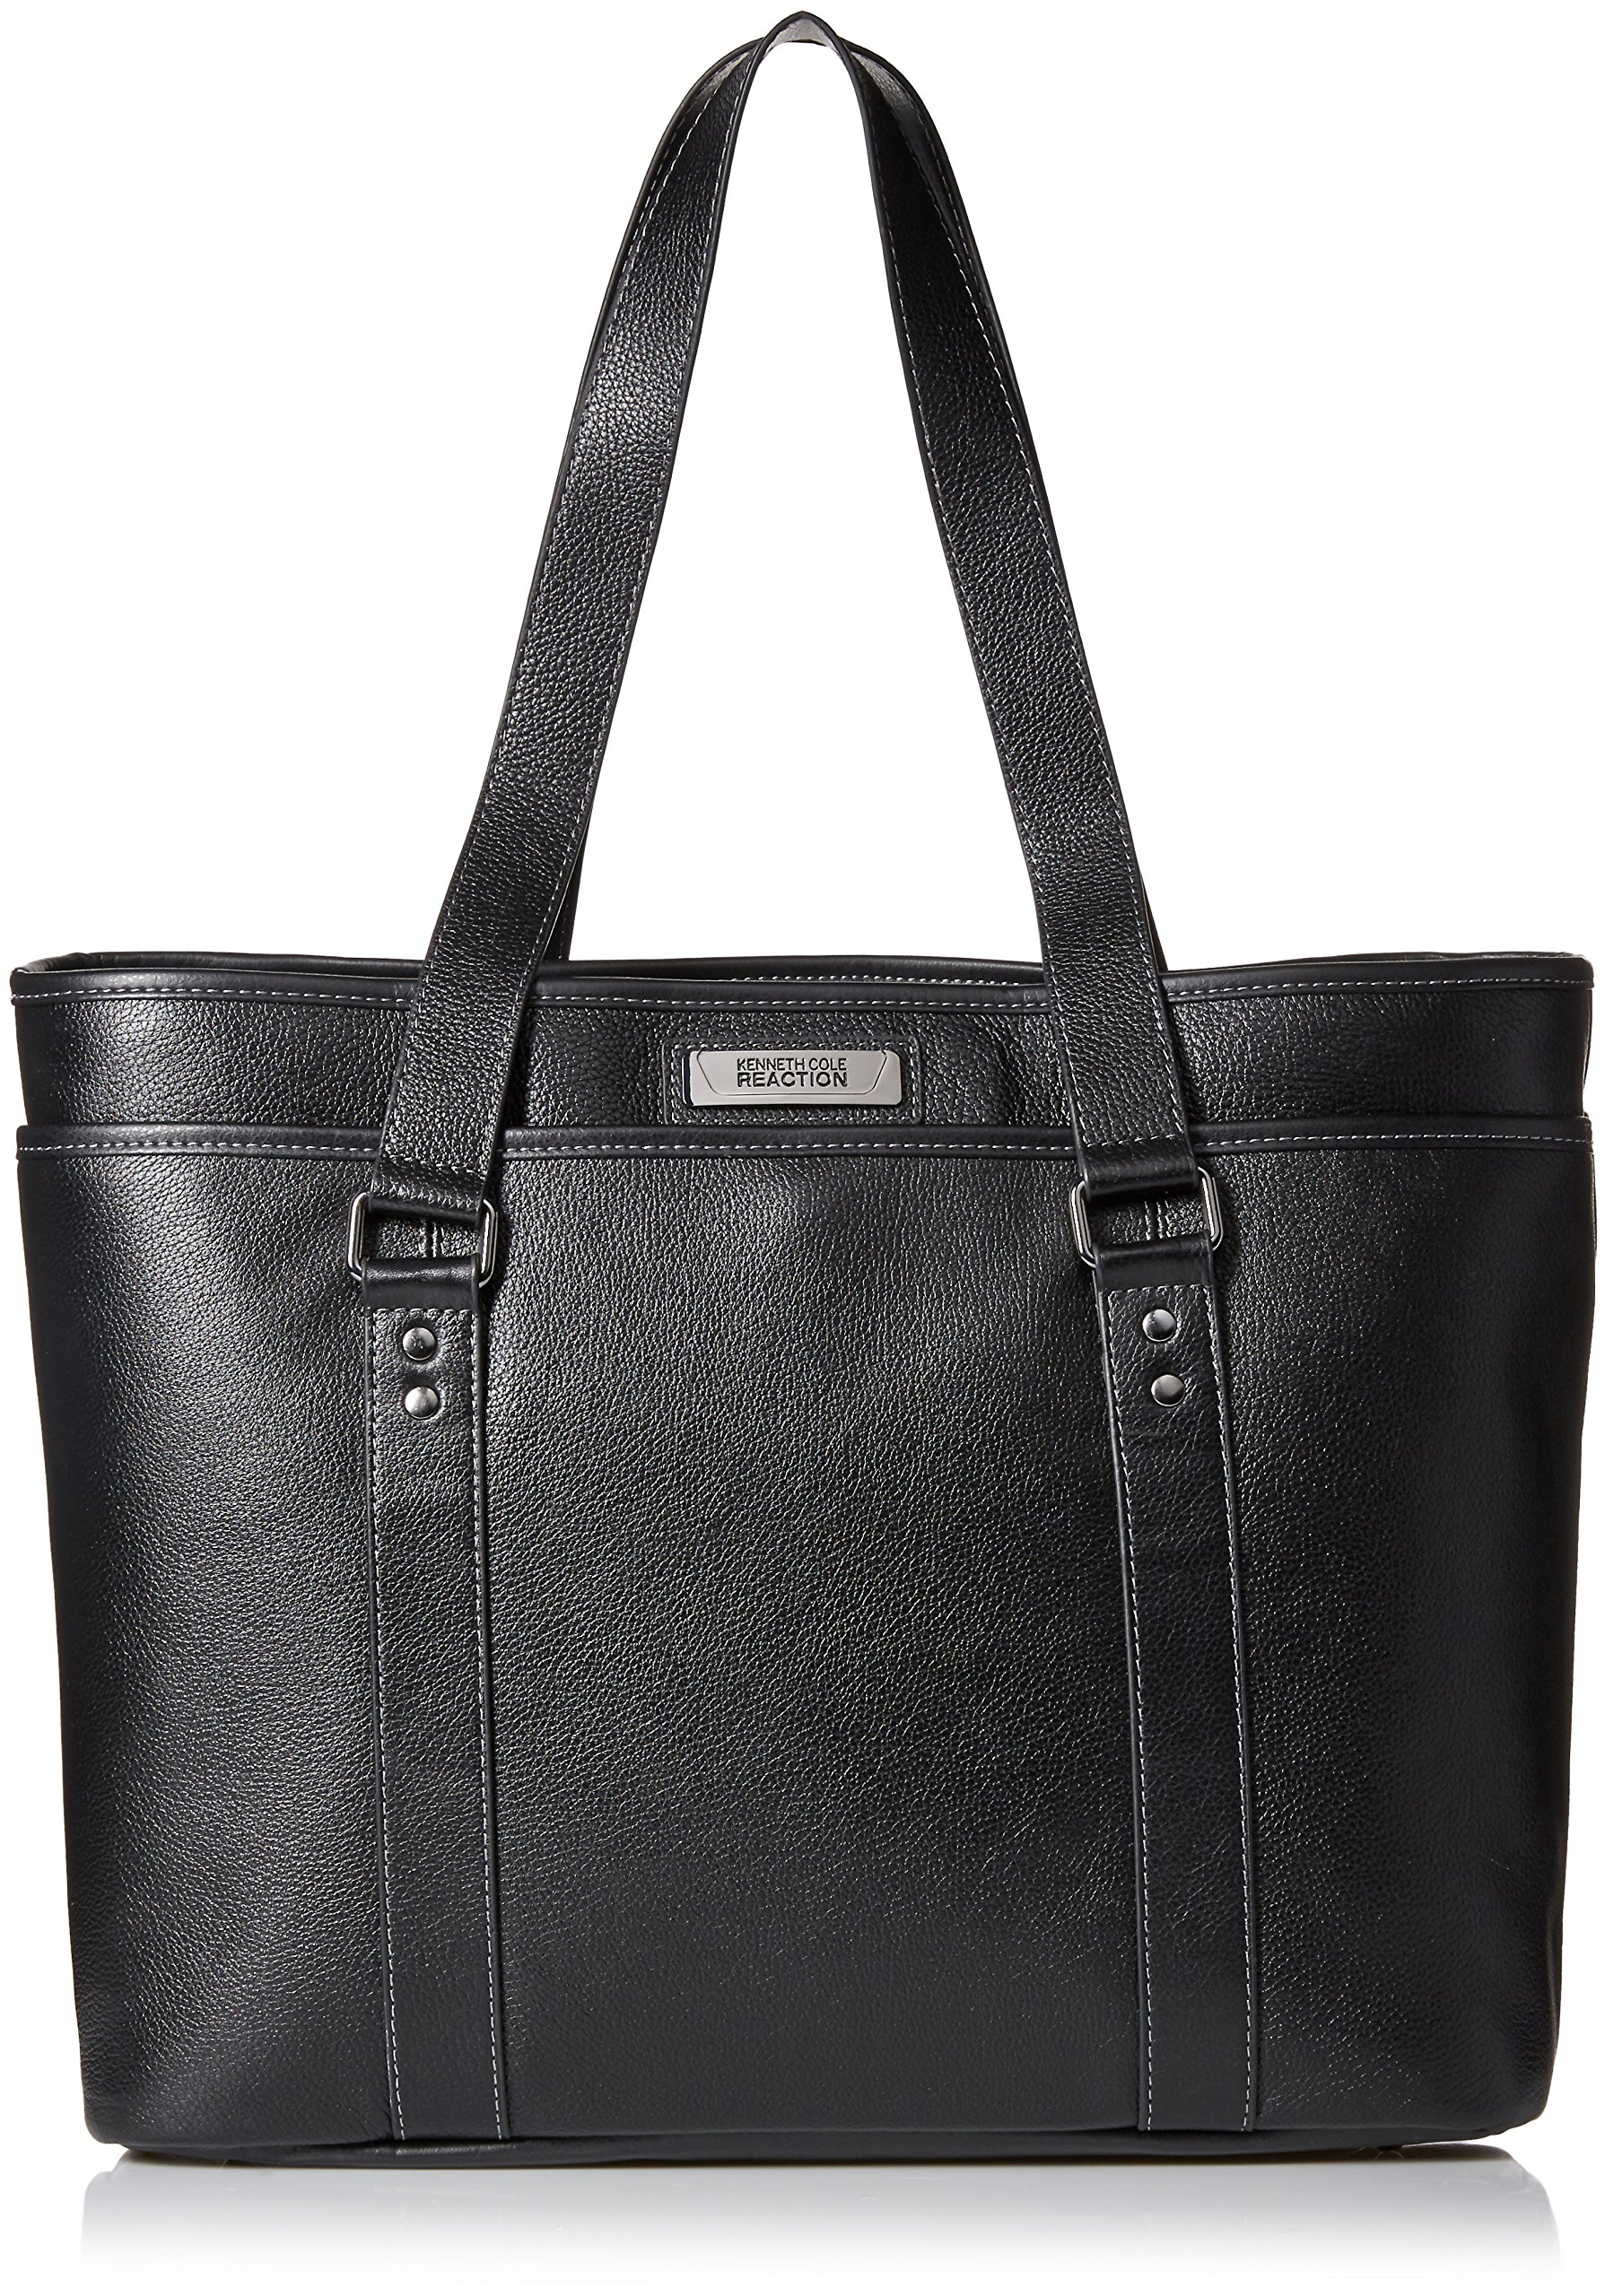 Kenneth Cole Reaction a Majority Tote, Black